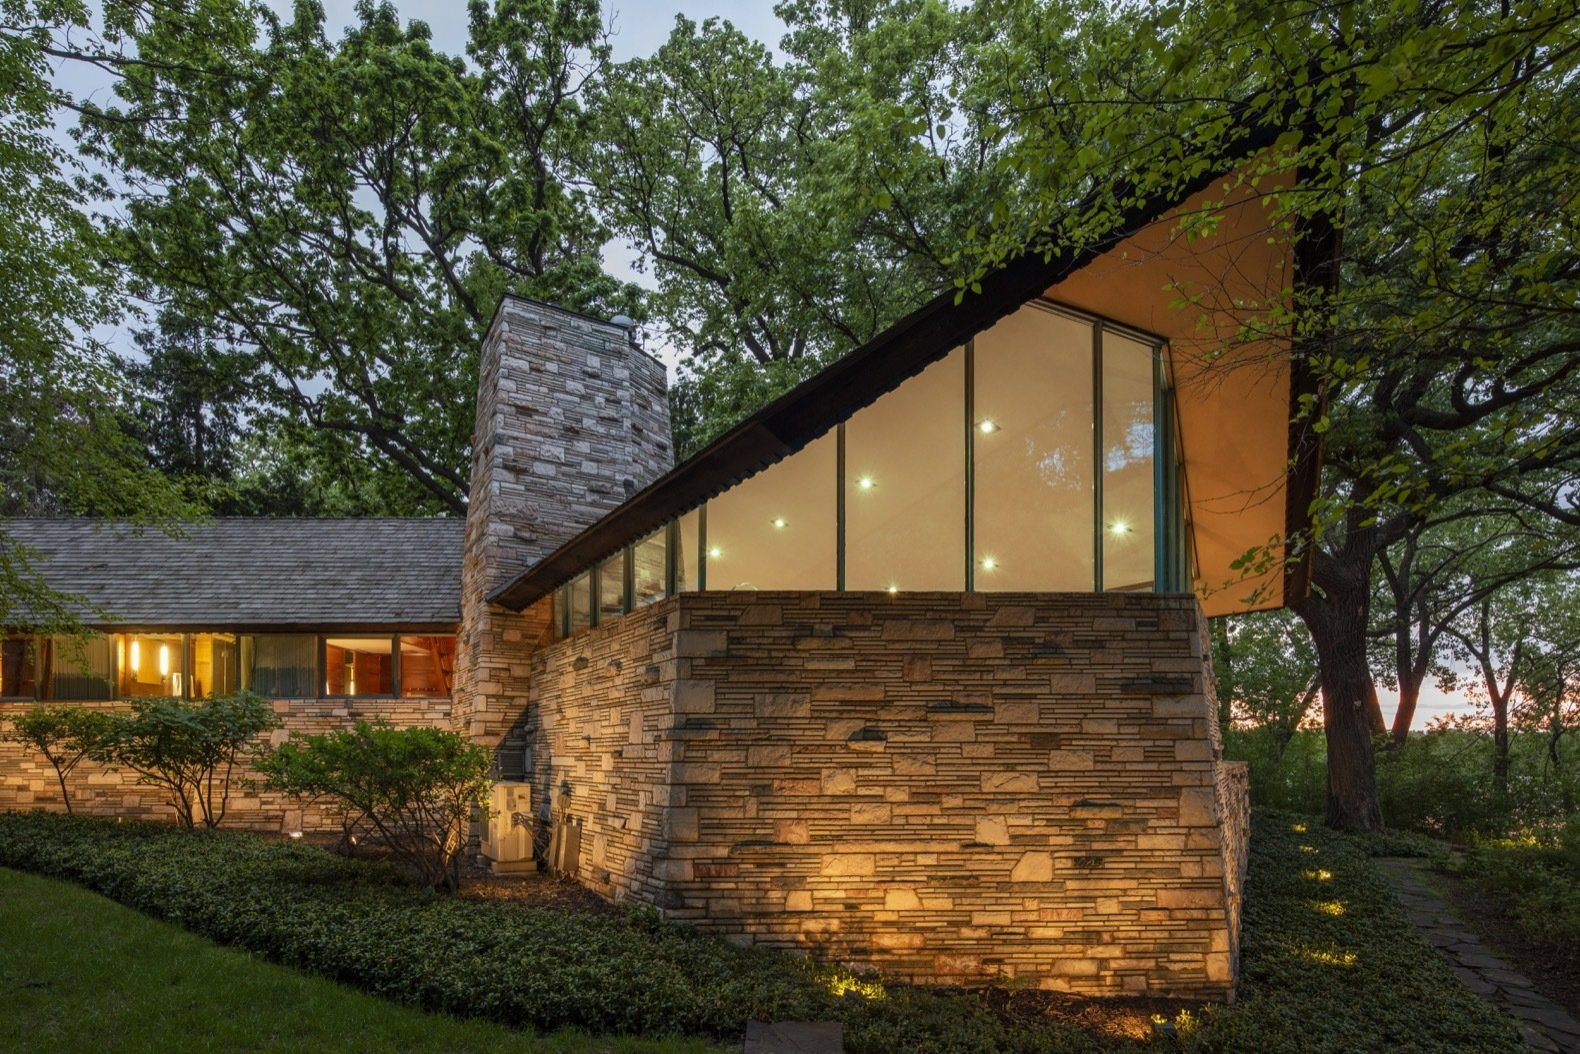 A Frank Lloyd Wright Home With Unusual Materials Hits The